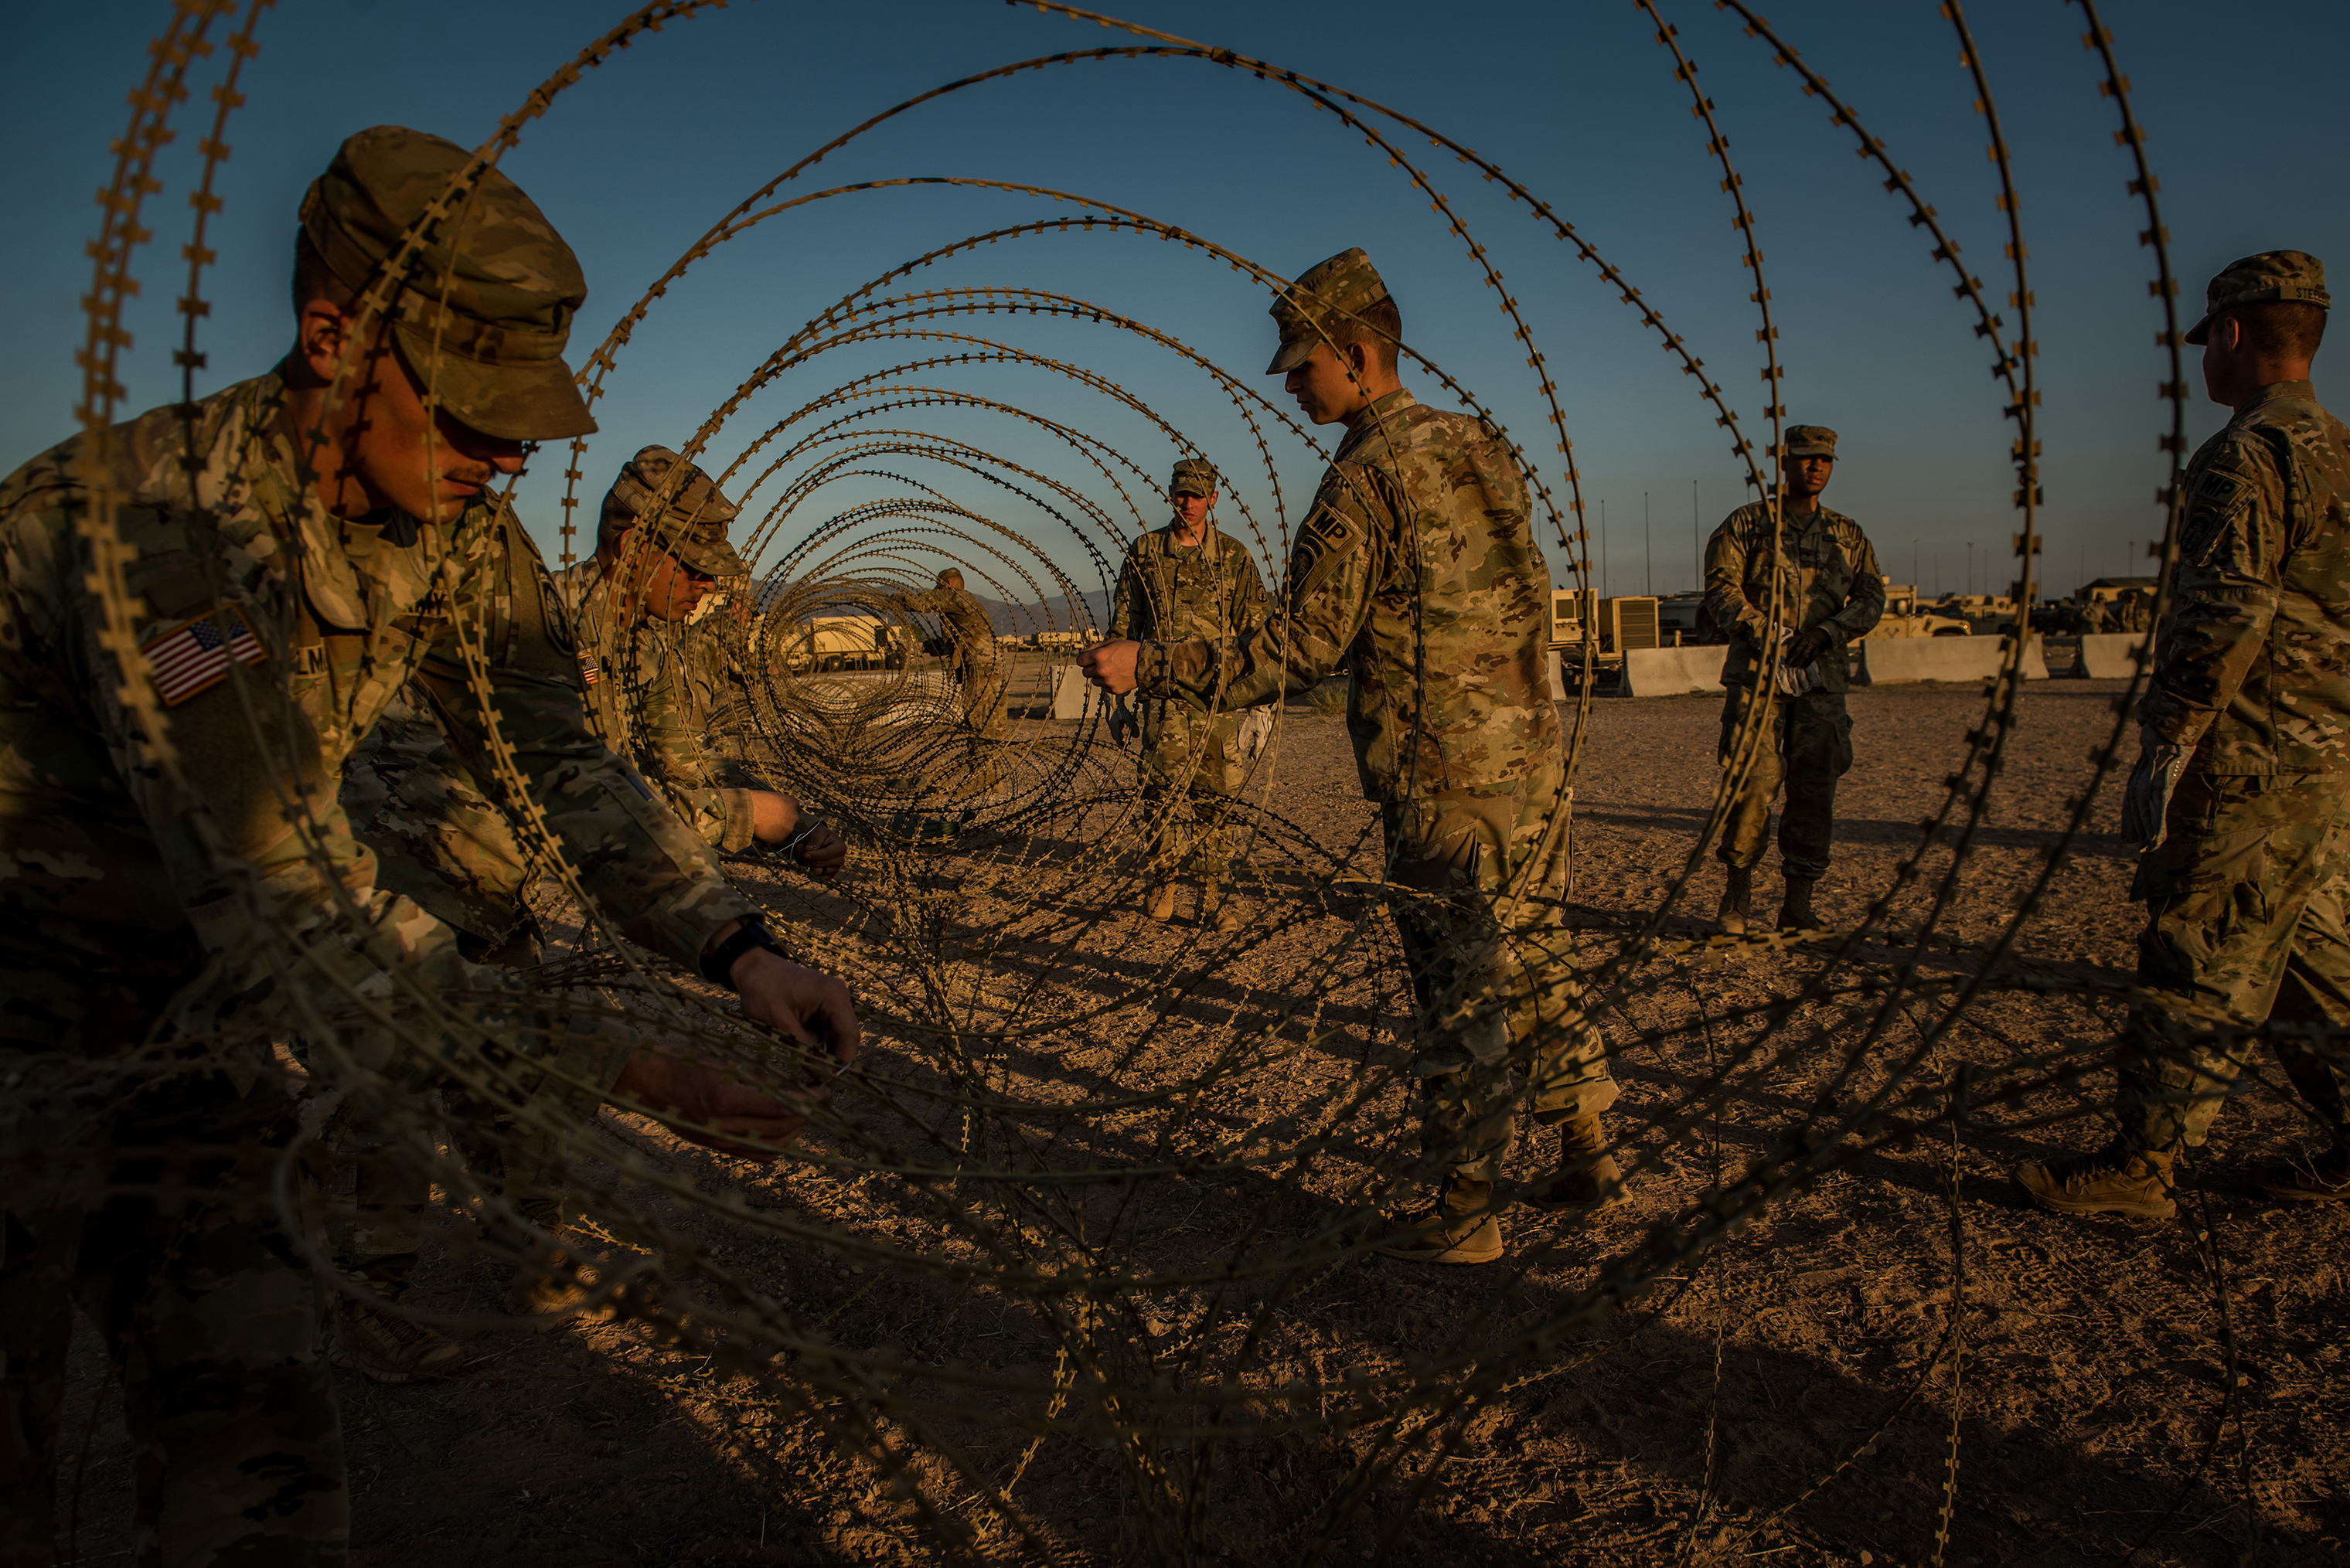 Razor wire is used to help protect a shipping container holding guns and sensitive material. After President Trump's orders in October, some 7,000 active-duty troops began to flood border communities from San Diego to Brownsville, Texas, a deployment that equals the troops fighting ISIS in Iraq and Syria.